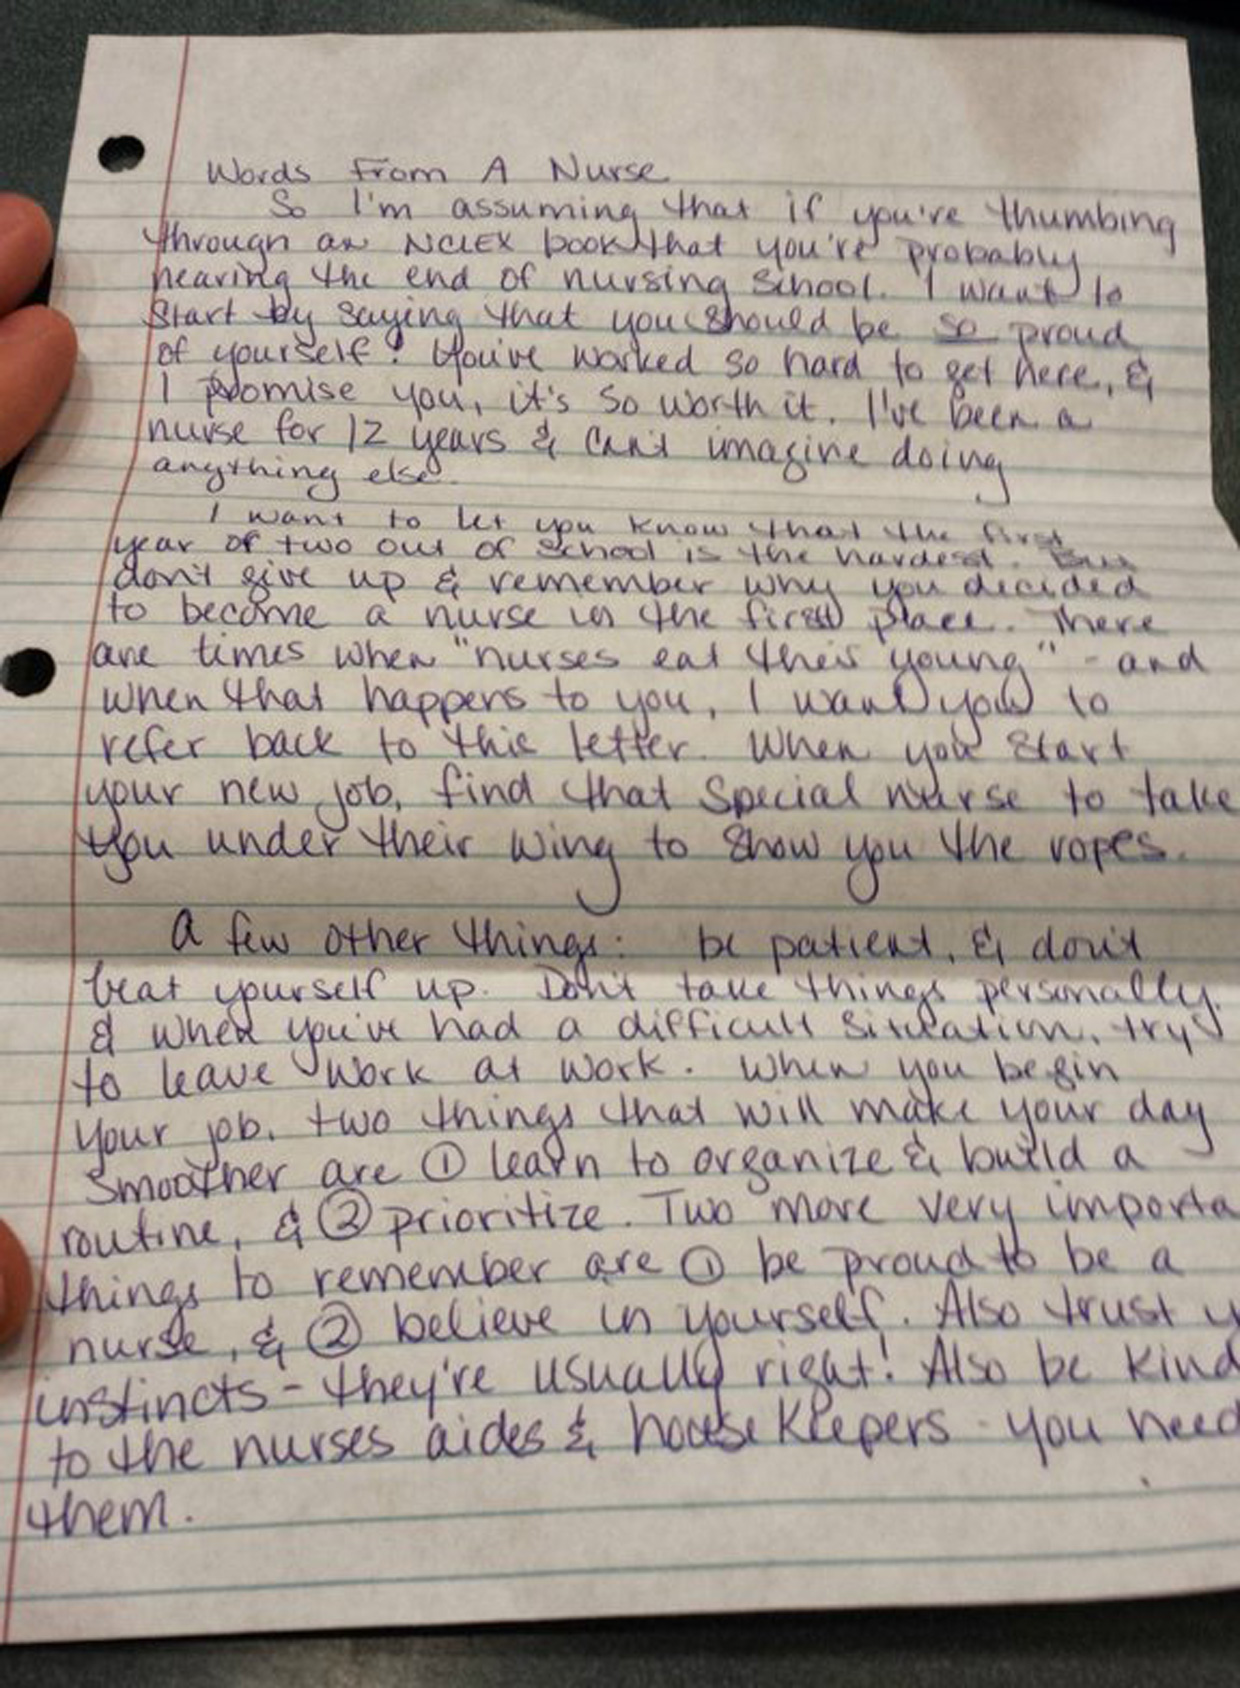 Inspiring Note From A Nurse To A Nursing Student Nursing Students